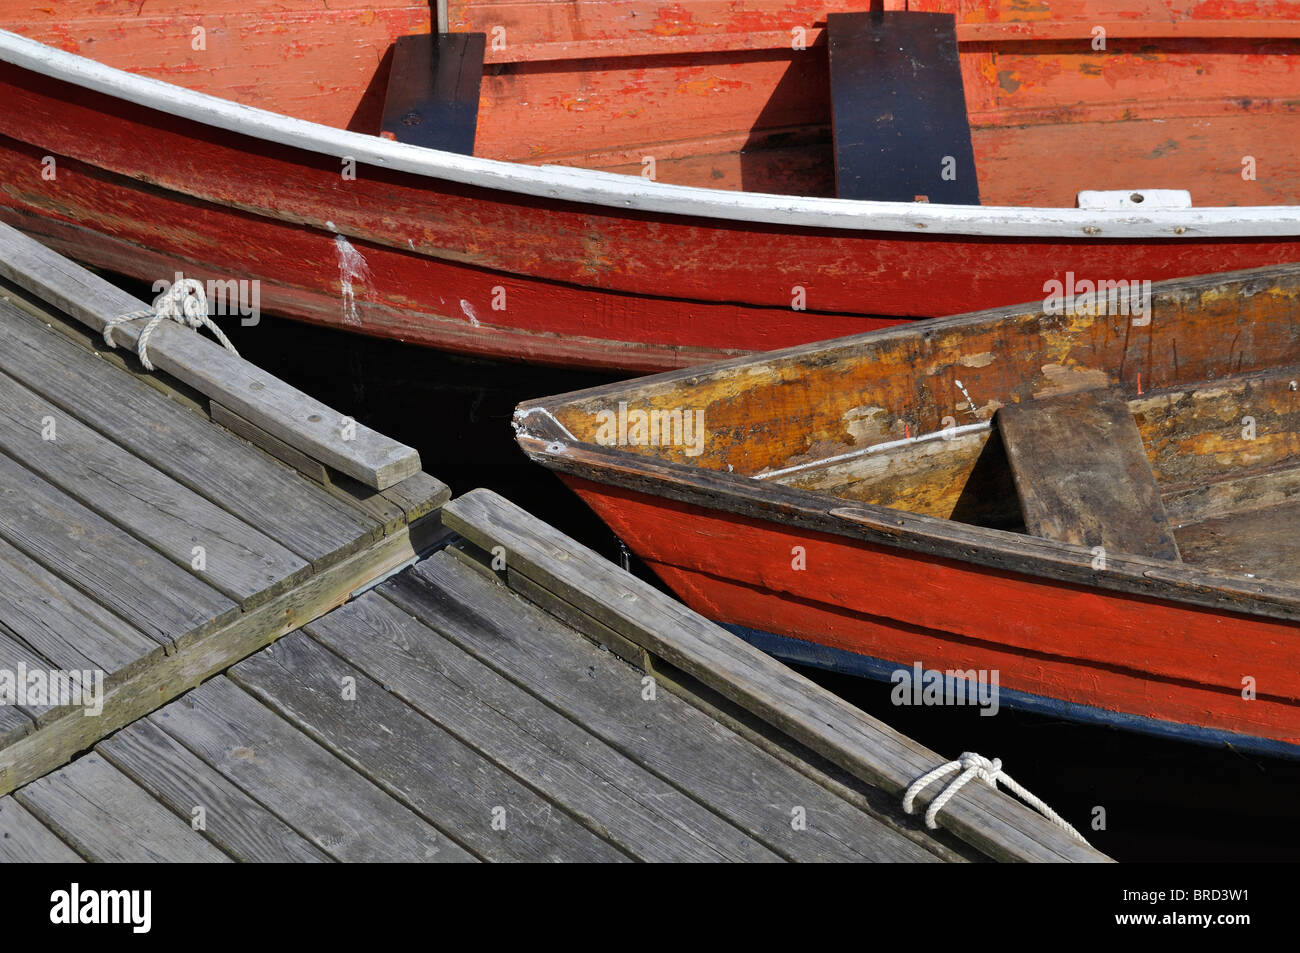 Colorful rowboats on dock in Rockport Harbor, Massachusetts - Stock Image